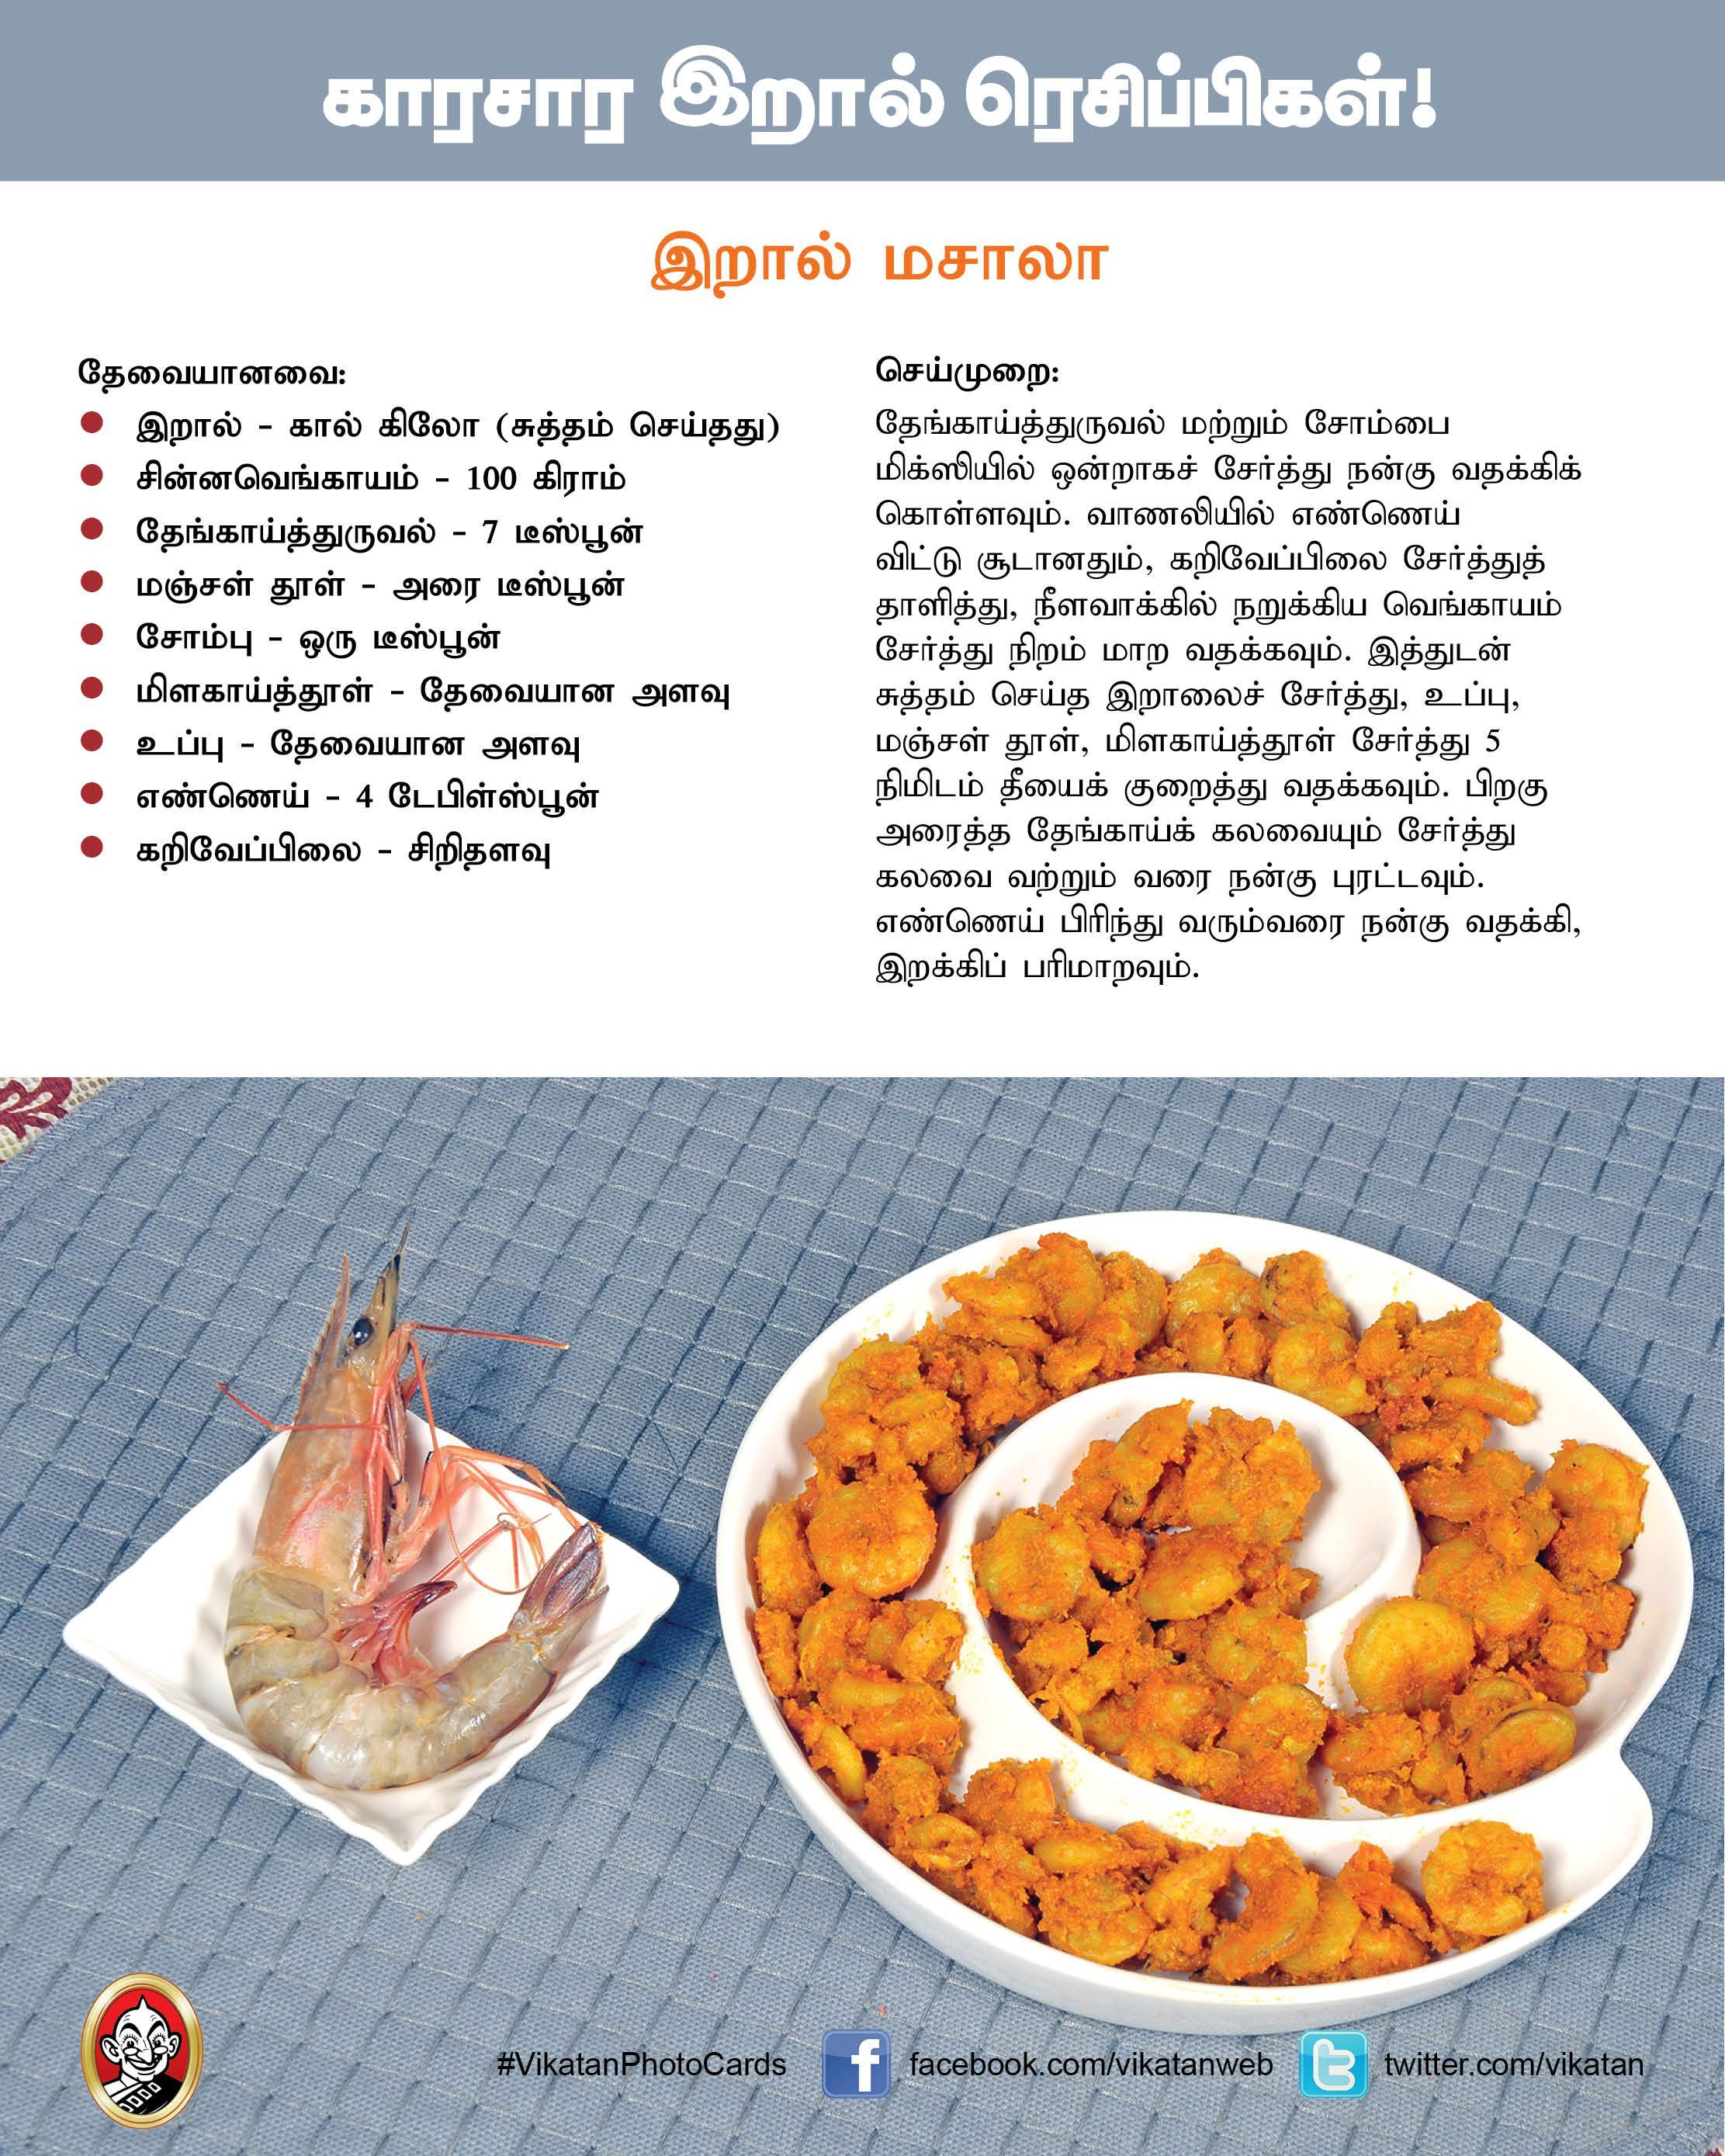 Recipes list of spicy shrimp non veg dishes pinterest recipe recipes list of spicy shrimp veg dishesspicy forumfinder Image collections